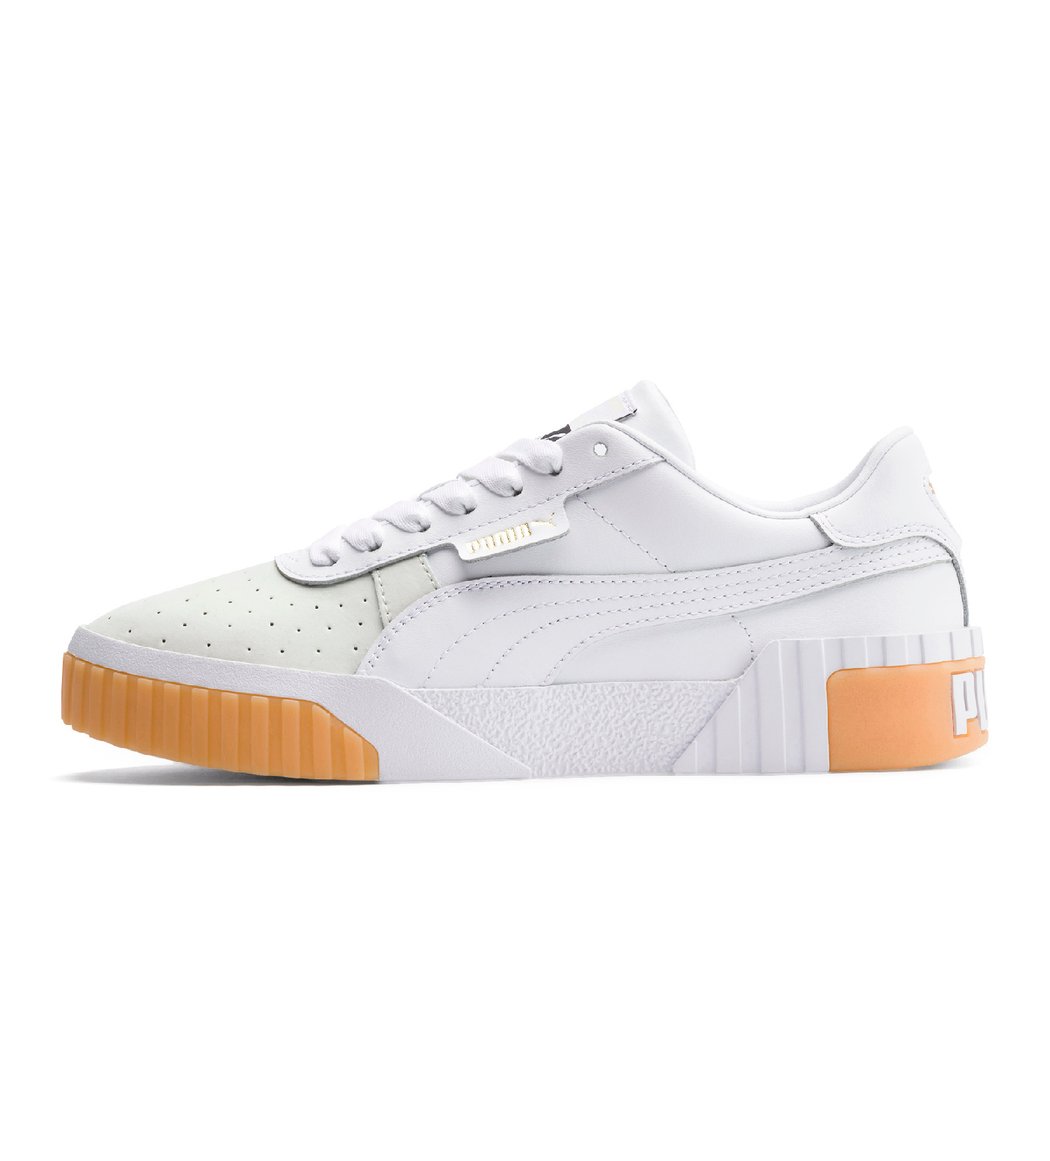 Puma 369653-01 sneakers white-Puma-Hoofers - We love shoes